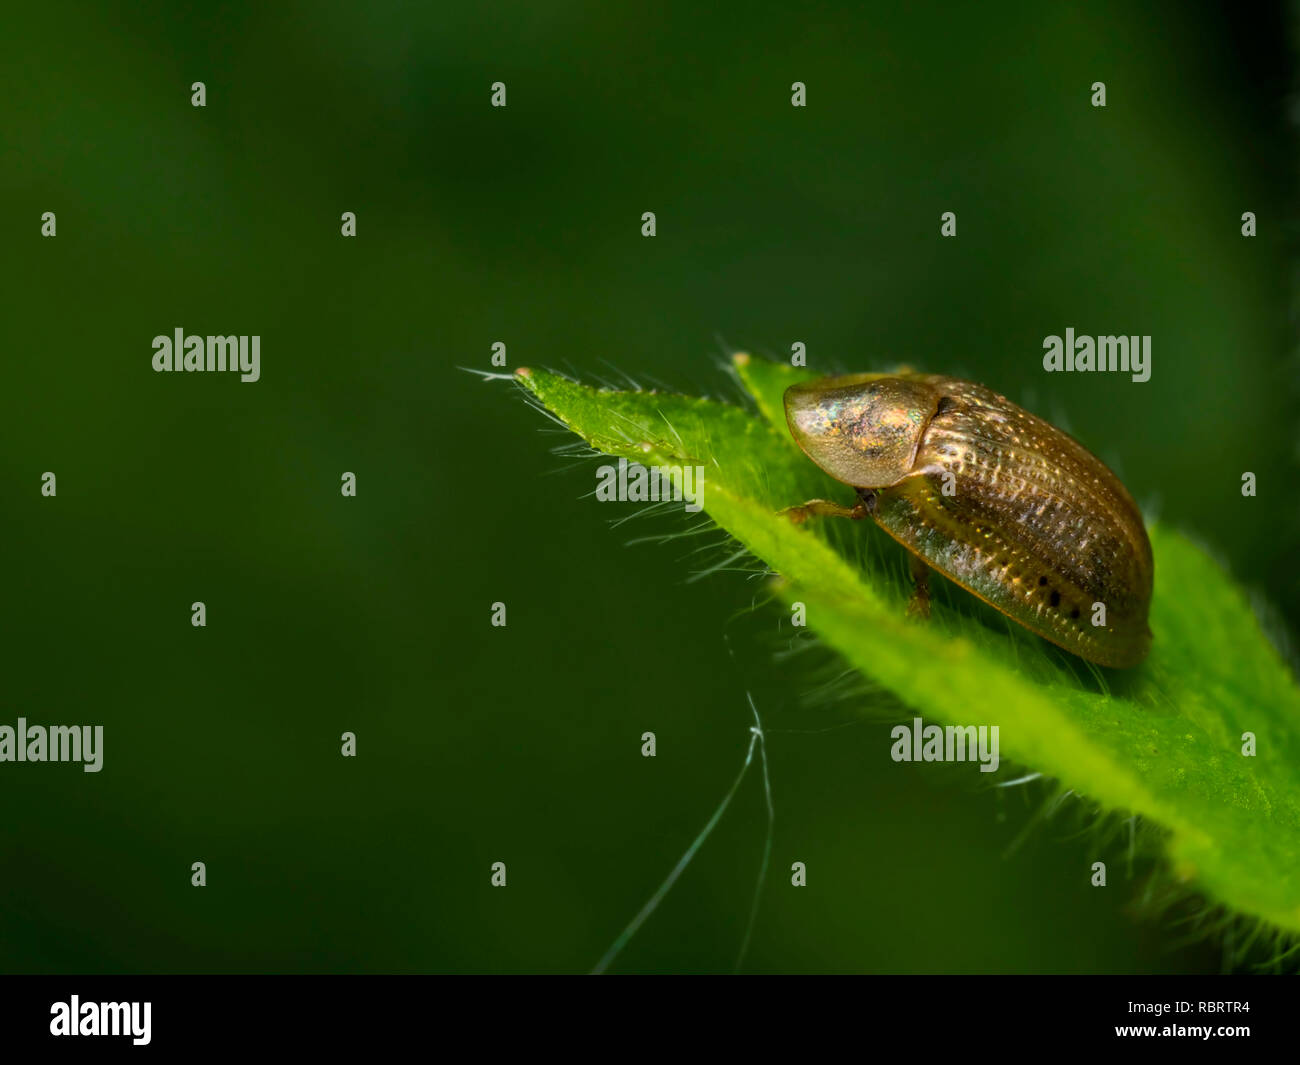 A Pale Tortoise Beetle (Cassida flaveola) found at Garston Wood in Dorset. - Stock Image